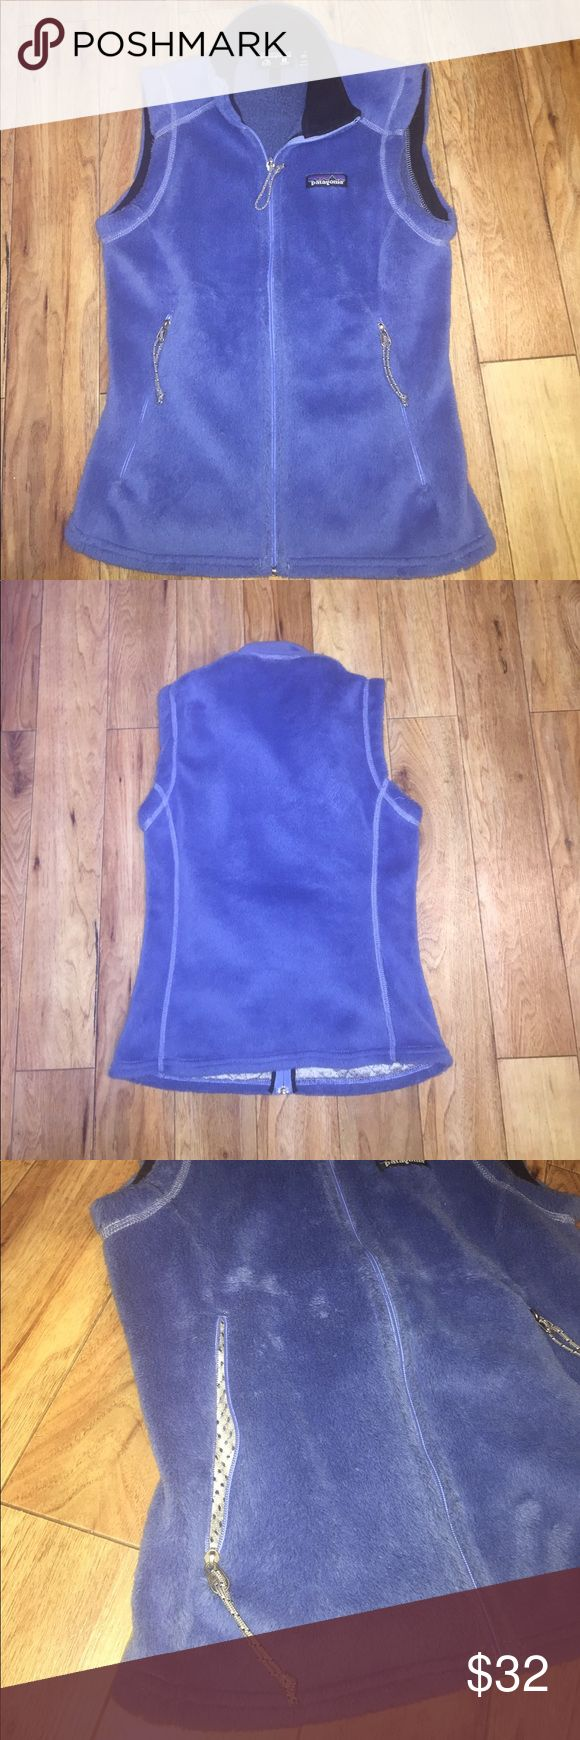 🎉PATAGONIA BLUE VEST🎉 Worn but in great condition! This vest is super soft and great quality. The two pockets have zipper and this vest is great for winter, fall or lounging around. It is an XS but it could probably fit a small. Buy now while you can! Patagonia Jackets & Coats Vests